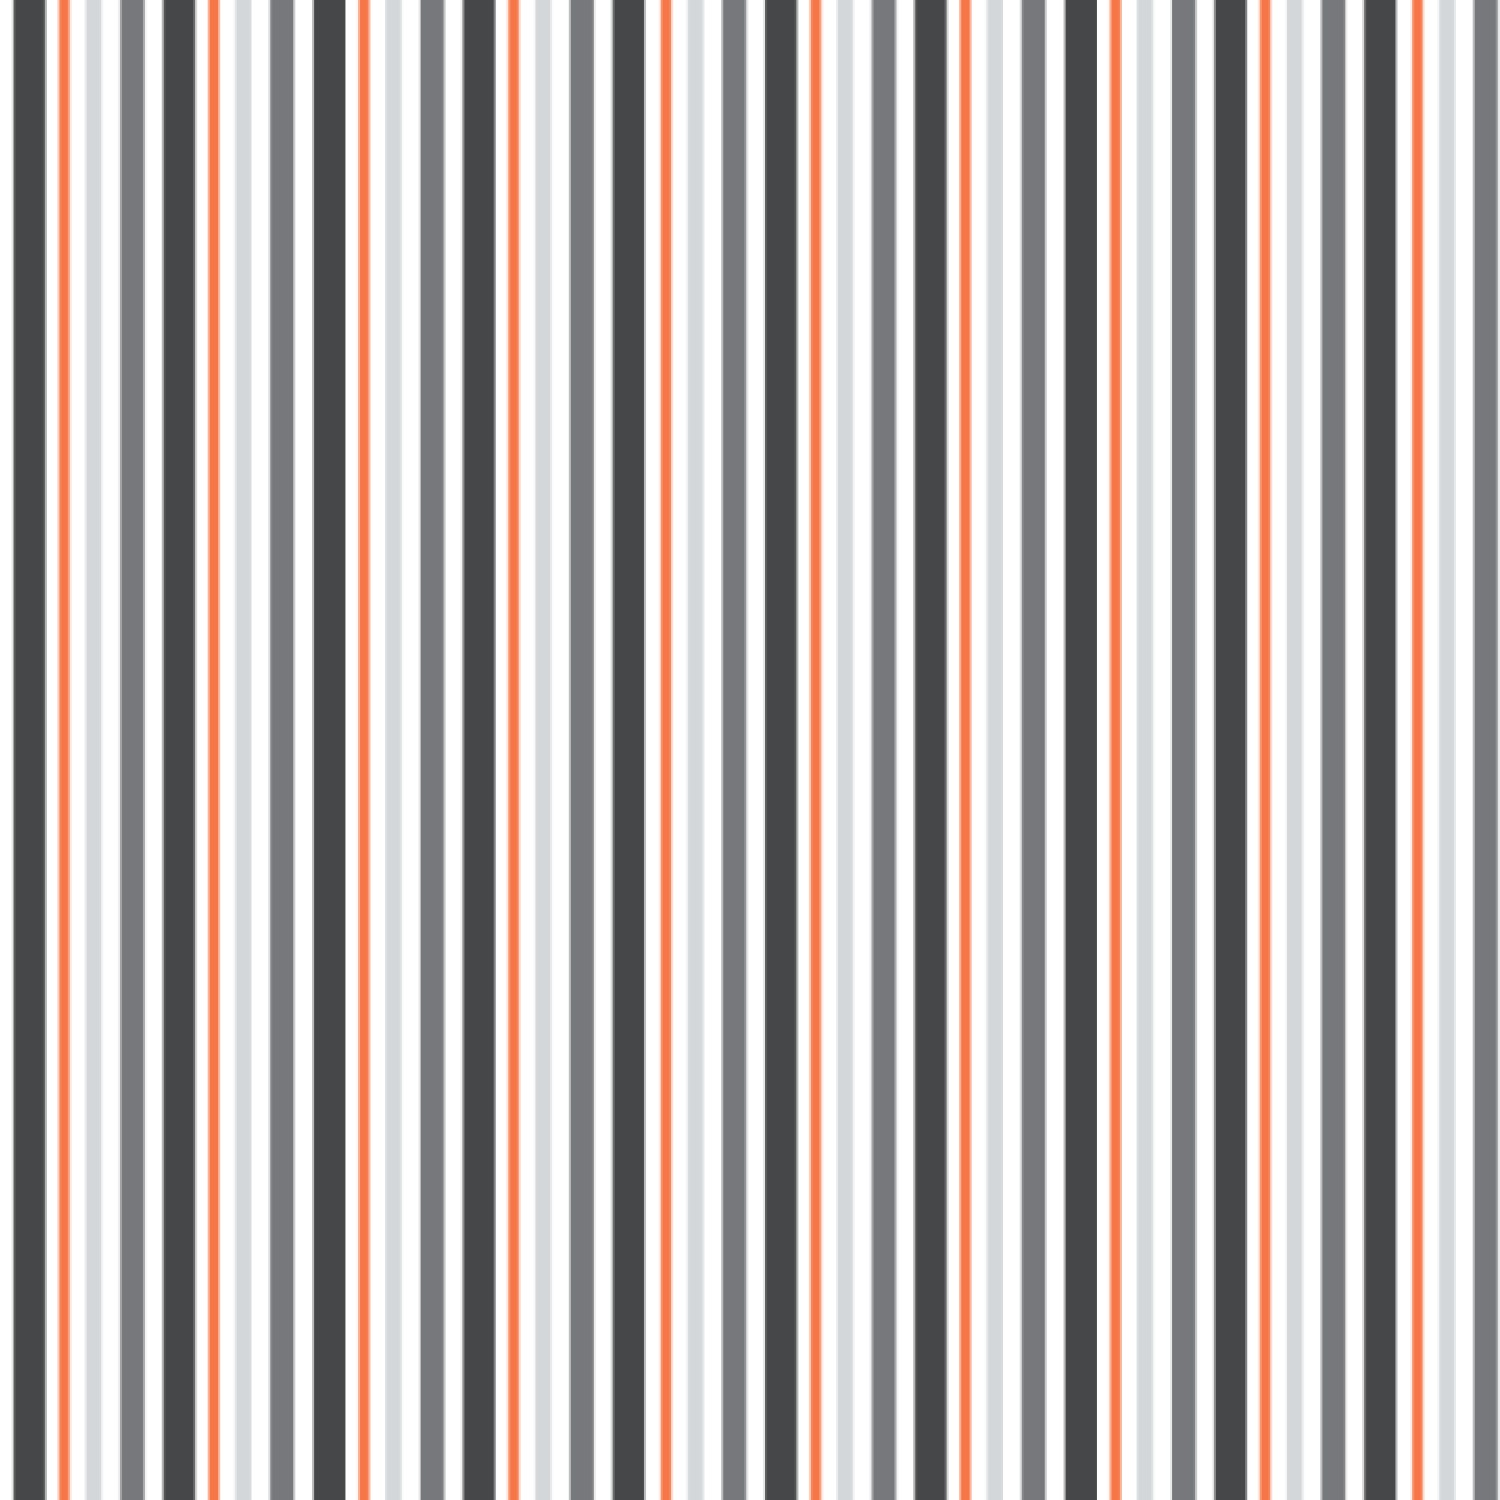 Gray Stripes Wallpaper & Surface Covering - You Customize It